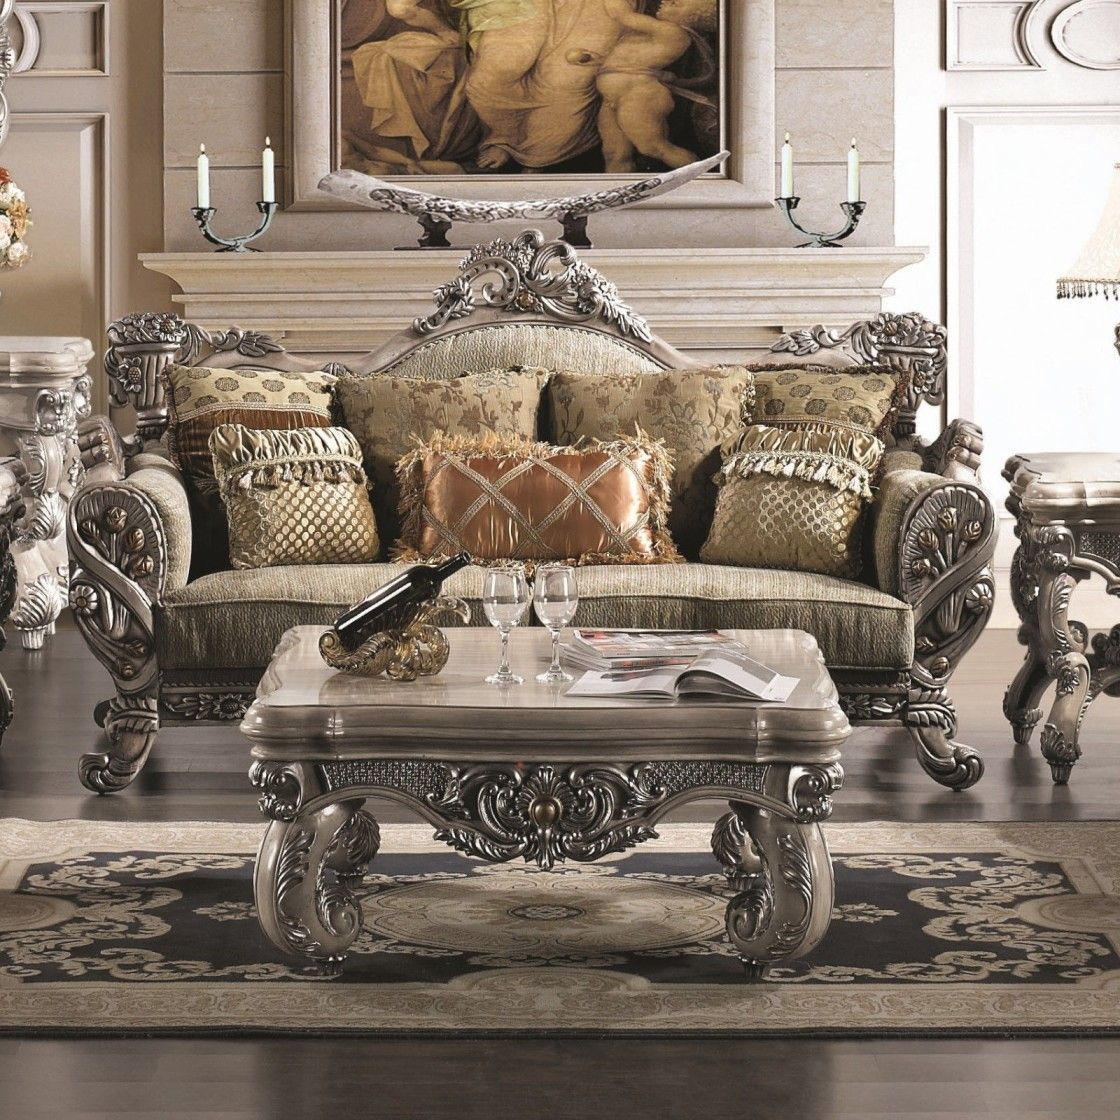 Superior ... Or Formal Living Room. These Tips Are Just A Few Of The Options To  Consider. Continue Reading Below To Explore Photos With More Great Ideas  For Creating ...